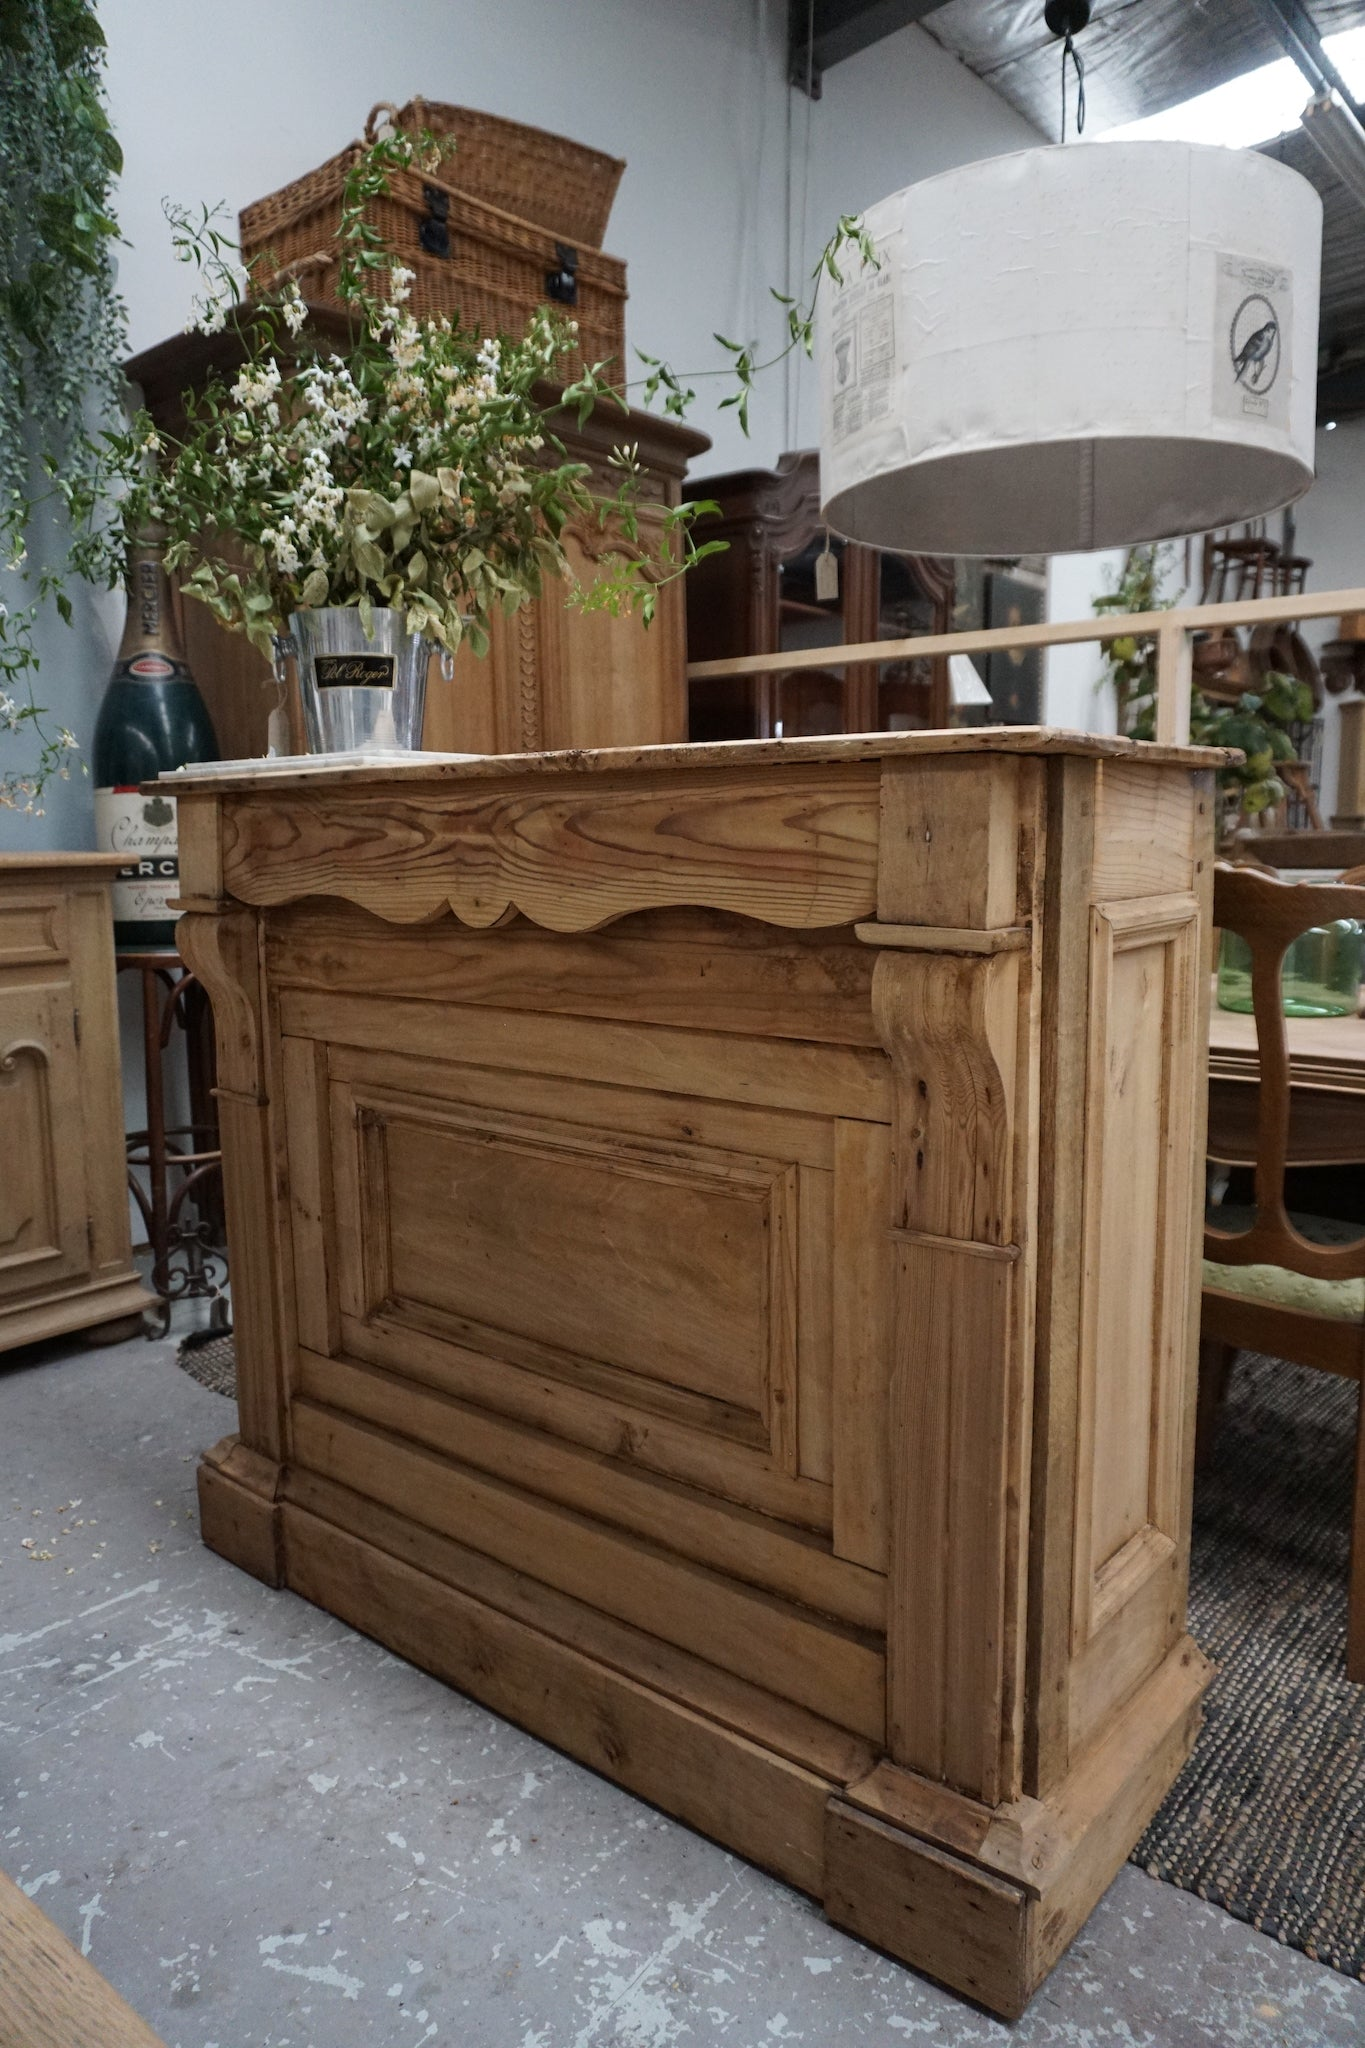 Antique French Counter/Bar